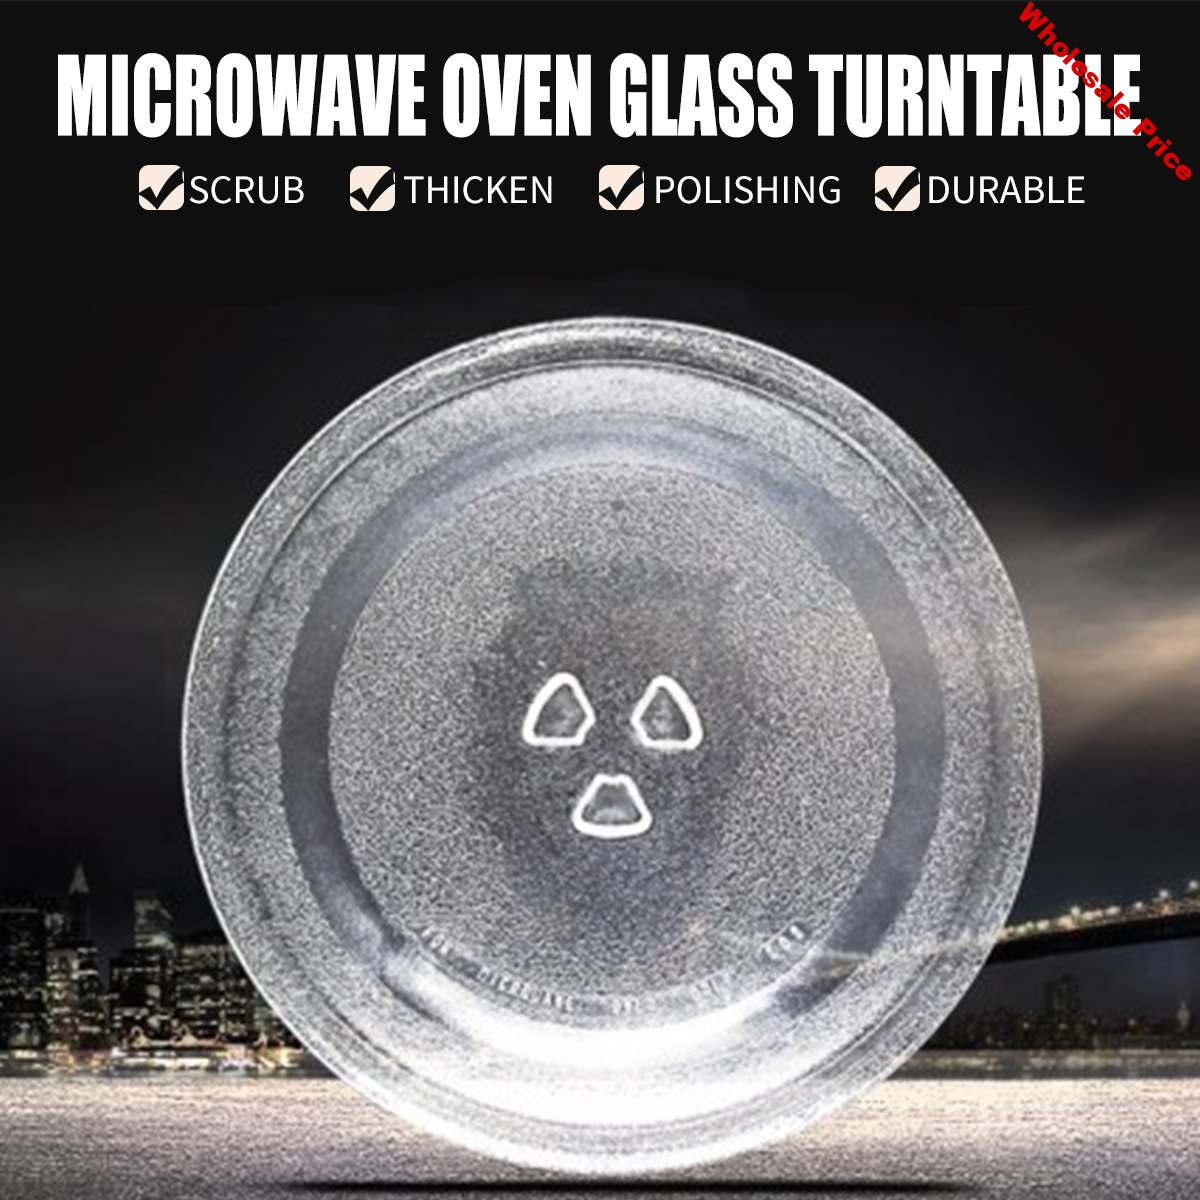 Univeral Microwave Oven Glass Turntable Plate Platter 245 mm Suits for Midea and Many Brand Thicken